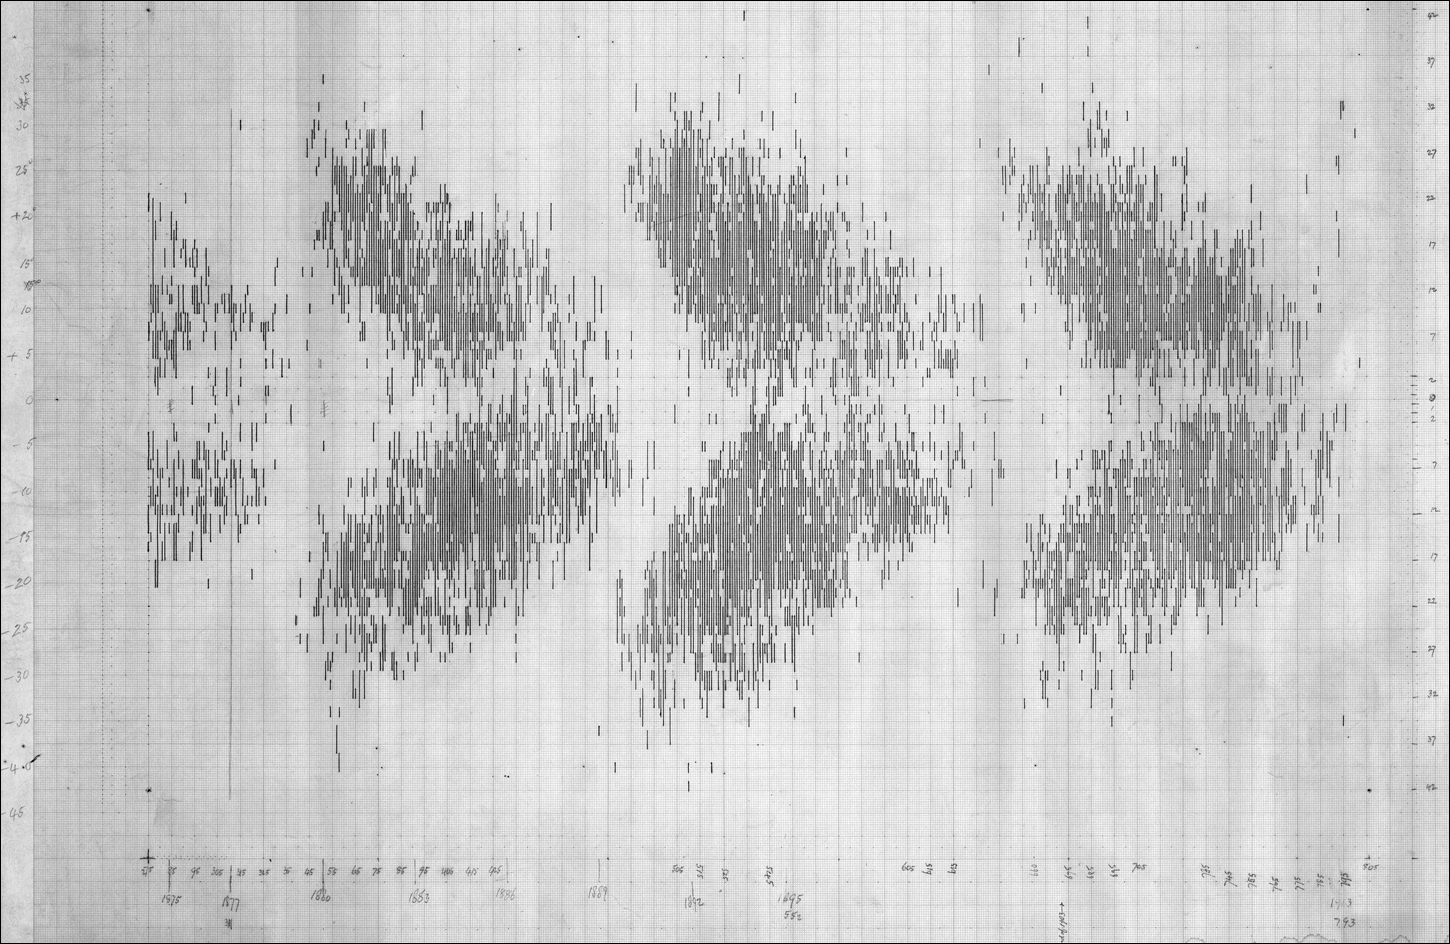 The Maunders' original butterfly diagram, showing the latitude at which sunspots are located over time. On 21 May 1940, Annie mailed it from London to her friend Stephen Ionides in the US, to save it from possible destruction during the Blitz. It was then given on indefinite loan to Walter Orr Roberts of Harvard College Observatory (renamed the High Altitude Observatory in 1946 and now part of NCAR in Boulder, Colorado), where it is on display. (via Dalla & Fletcher, 2016)